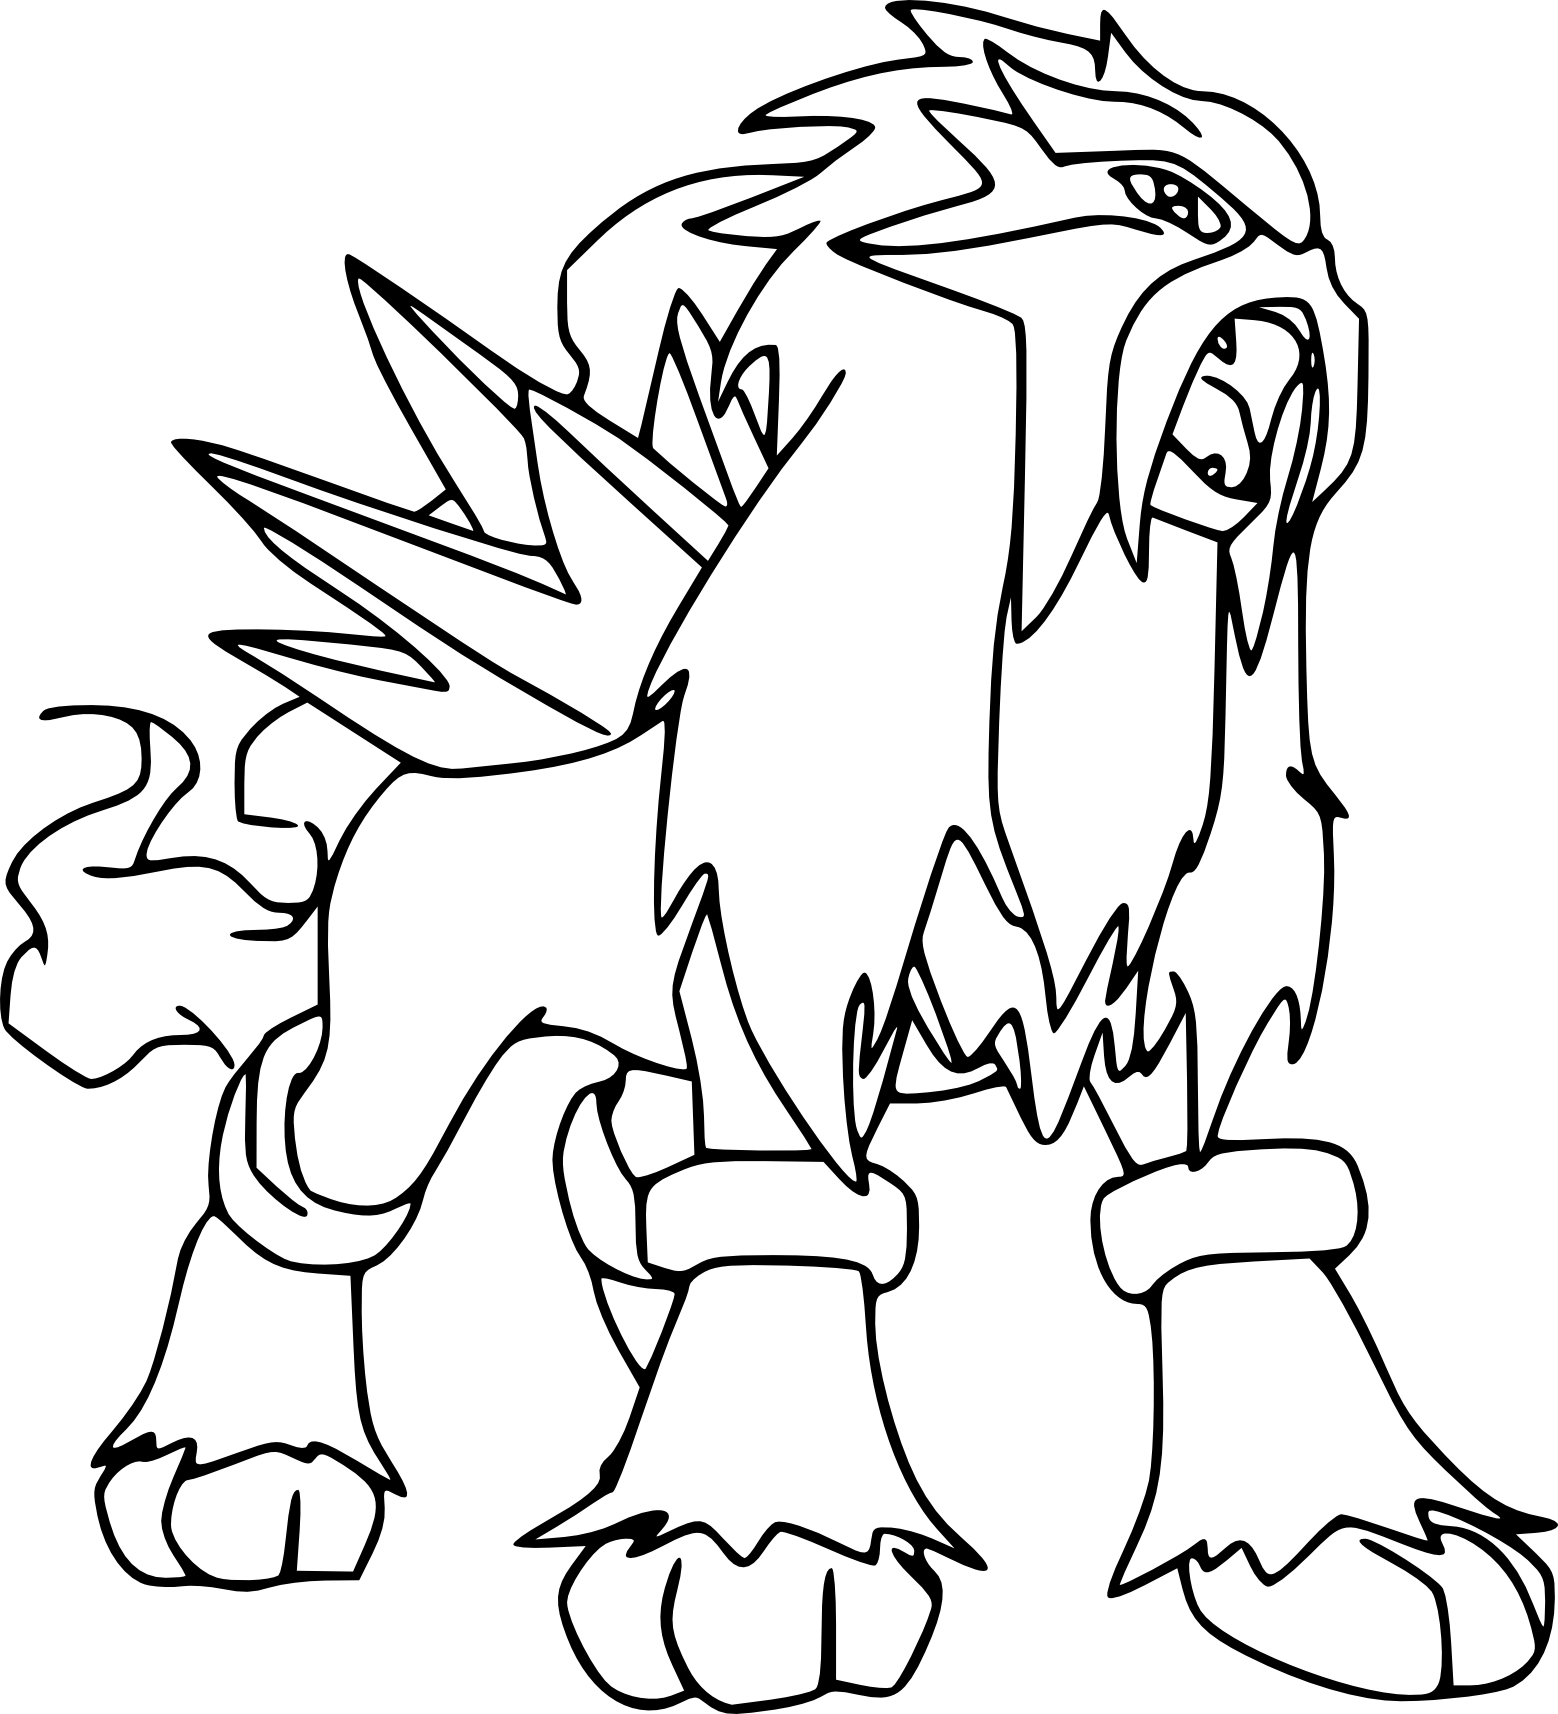 Entei coloriage entei pokemon imprimer et colorier - Coloriage pokemon legendaire a imprimer ...